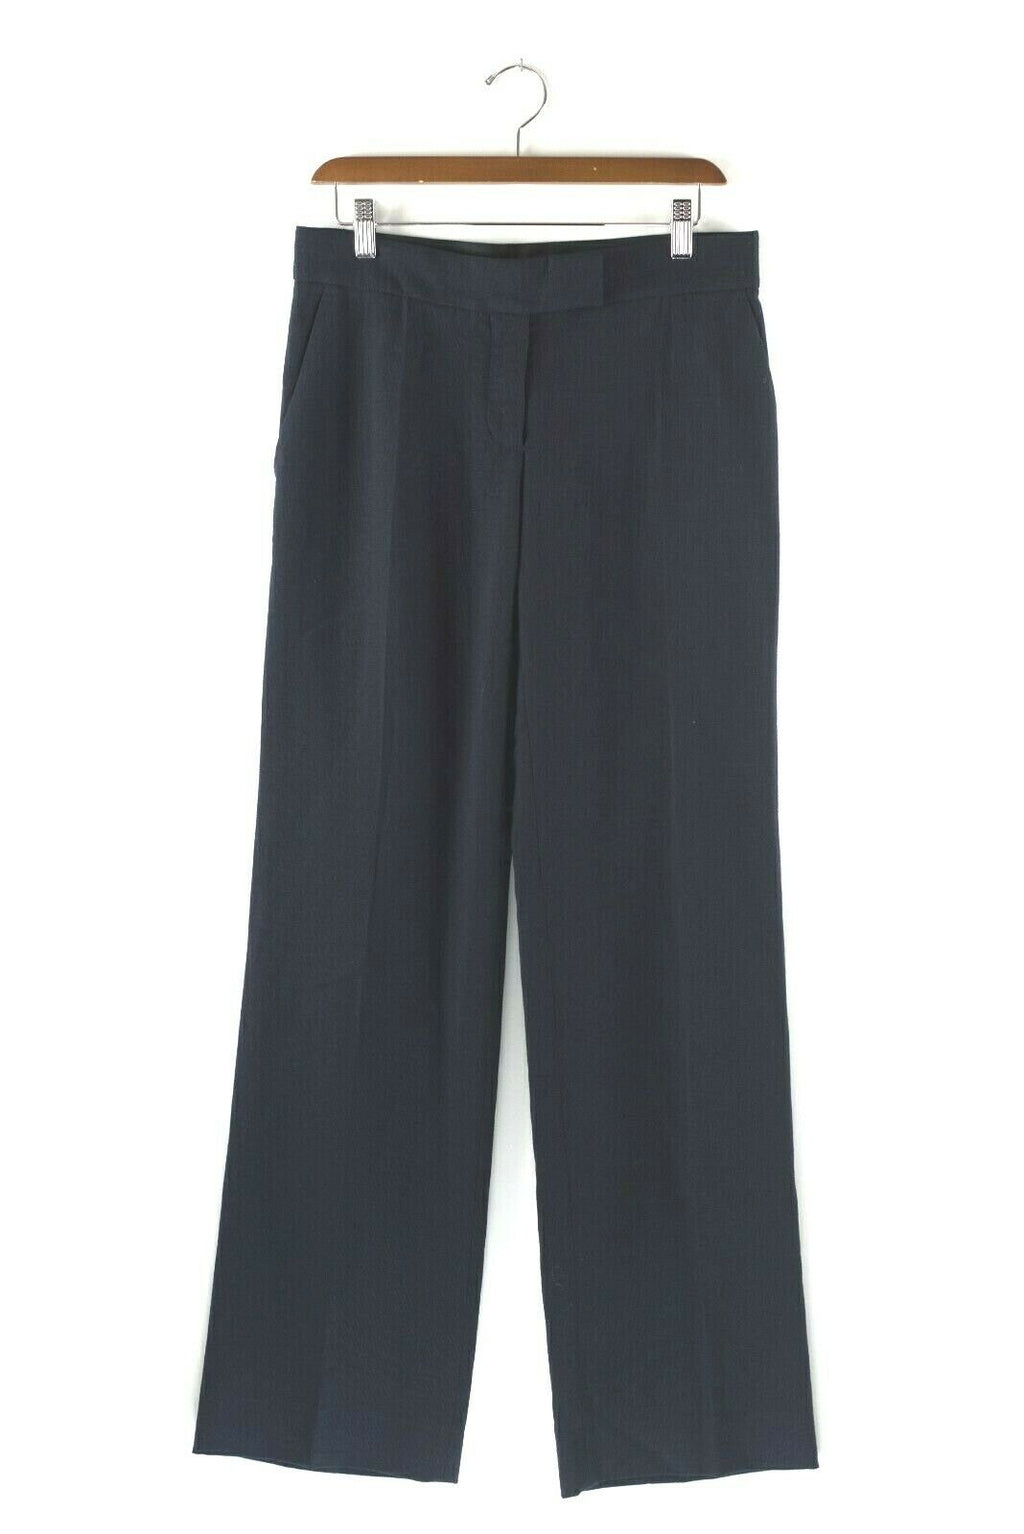 Stella McCartney Womens Size 4 Small Navy Blue Trousers Wool Pants Wide Leg